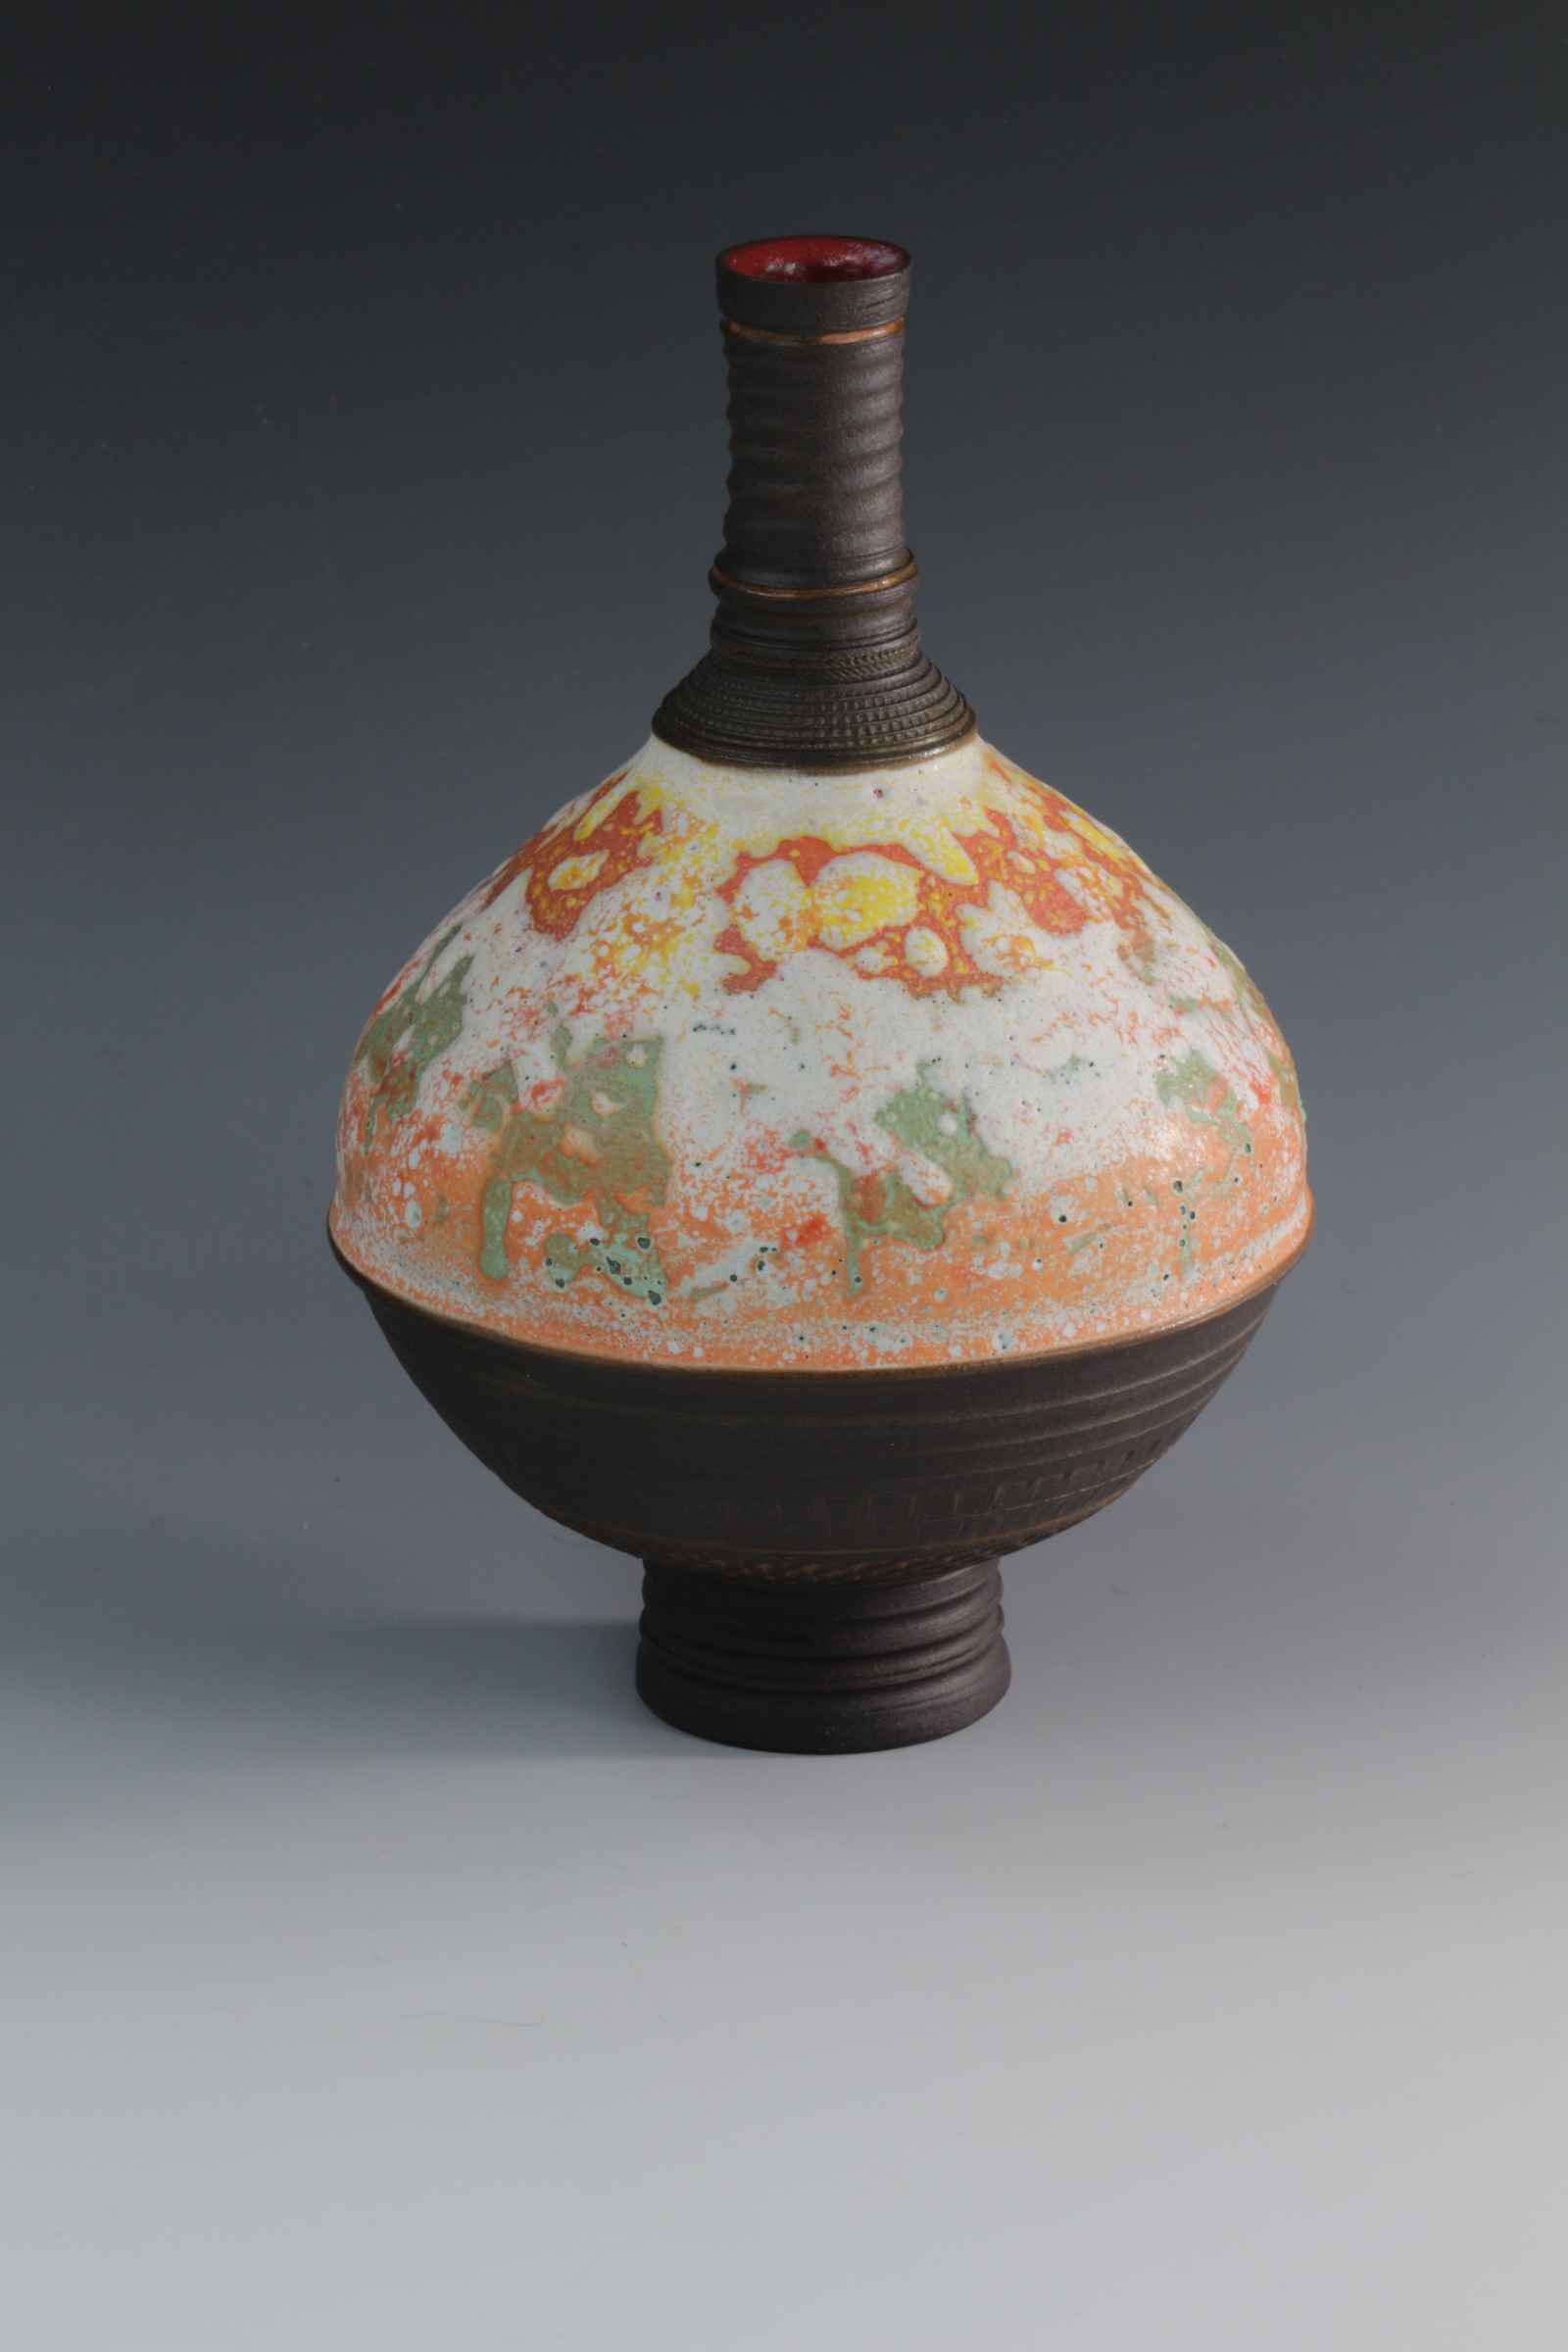 "<span class=""link fancybox-details-link""><a href=""/artists/61-geoffrey-swindell/works/6904-geoffrey-swindell-bud-vase-2020/"">View Detail Page</a></span><div class=""artist""><strong>Geoffrey Swindell</strong></div> <div class=""title""><em>Bud Vase</em>, 2020</div> <div class=""medium"">Porcelain</div><div class=""price"">£170.00</div><div class=""copyright_line"">Copyright The Artist</div>"